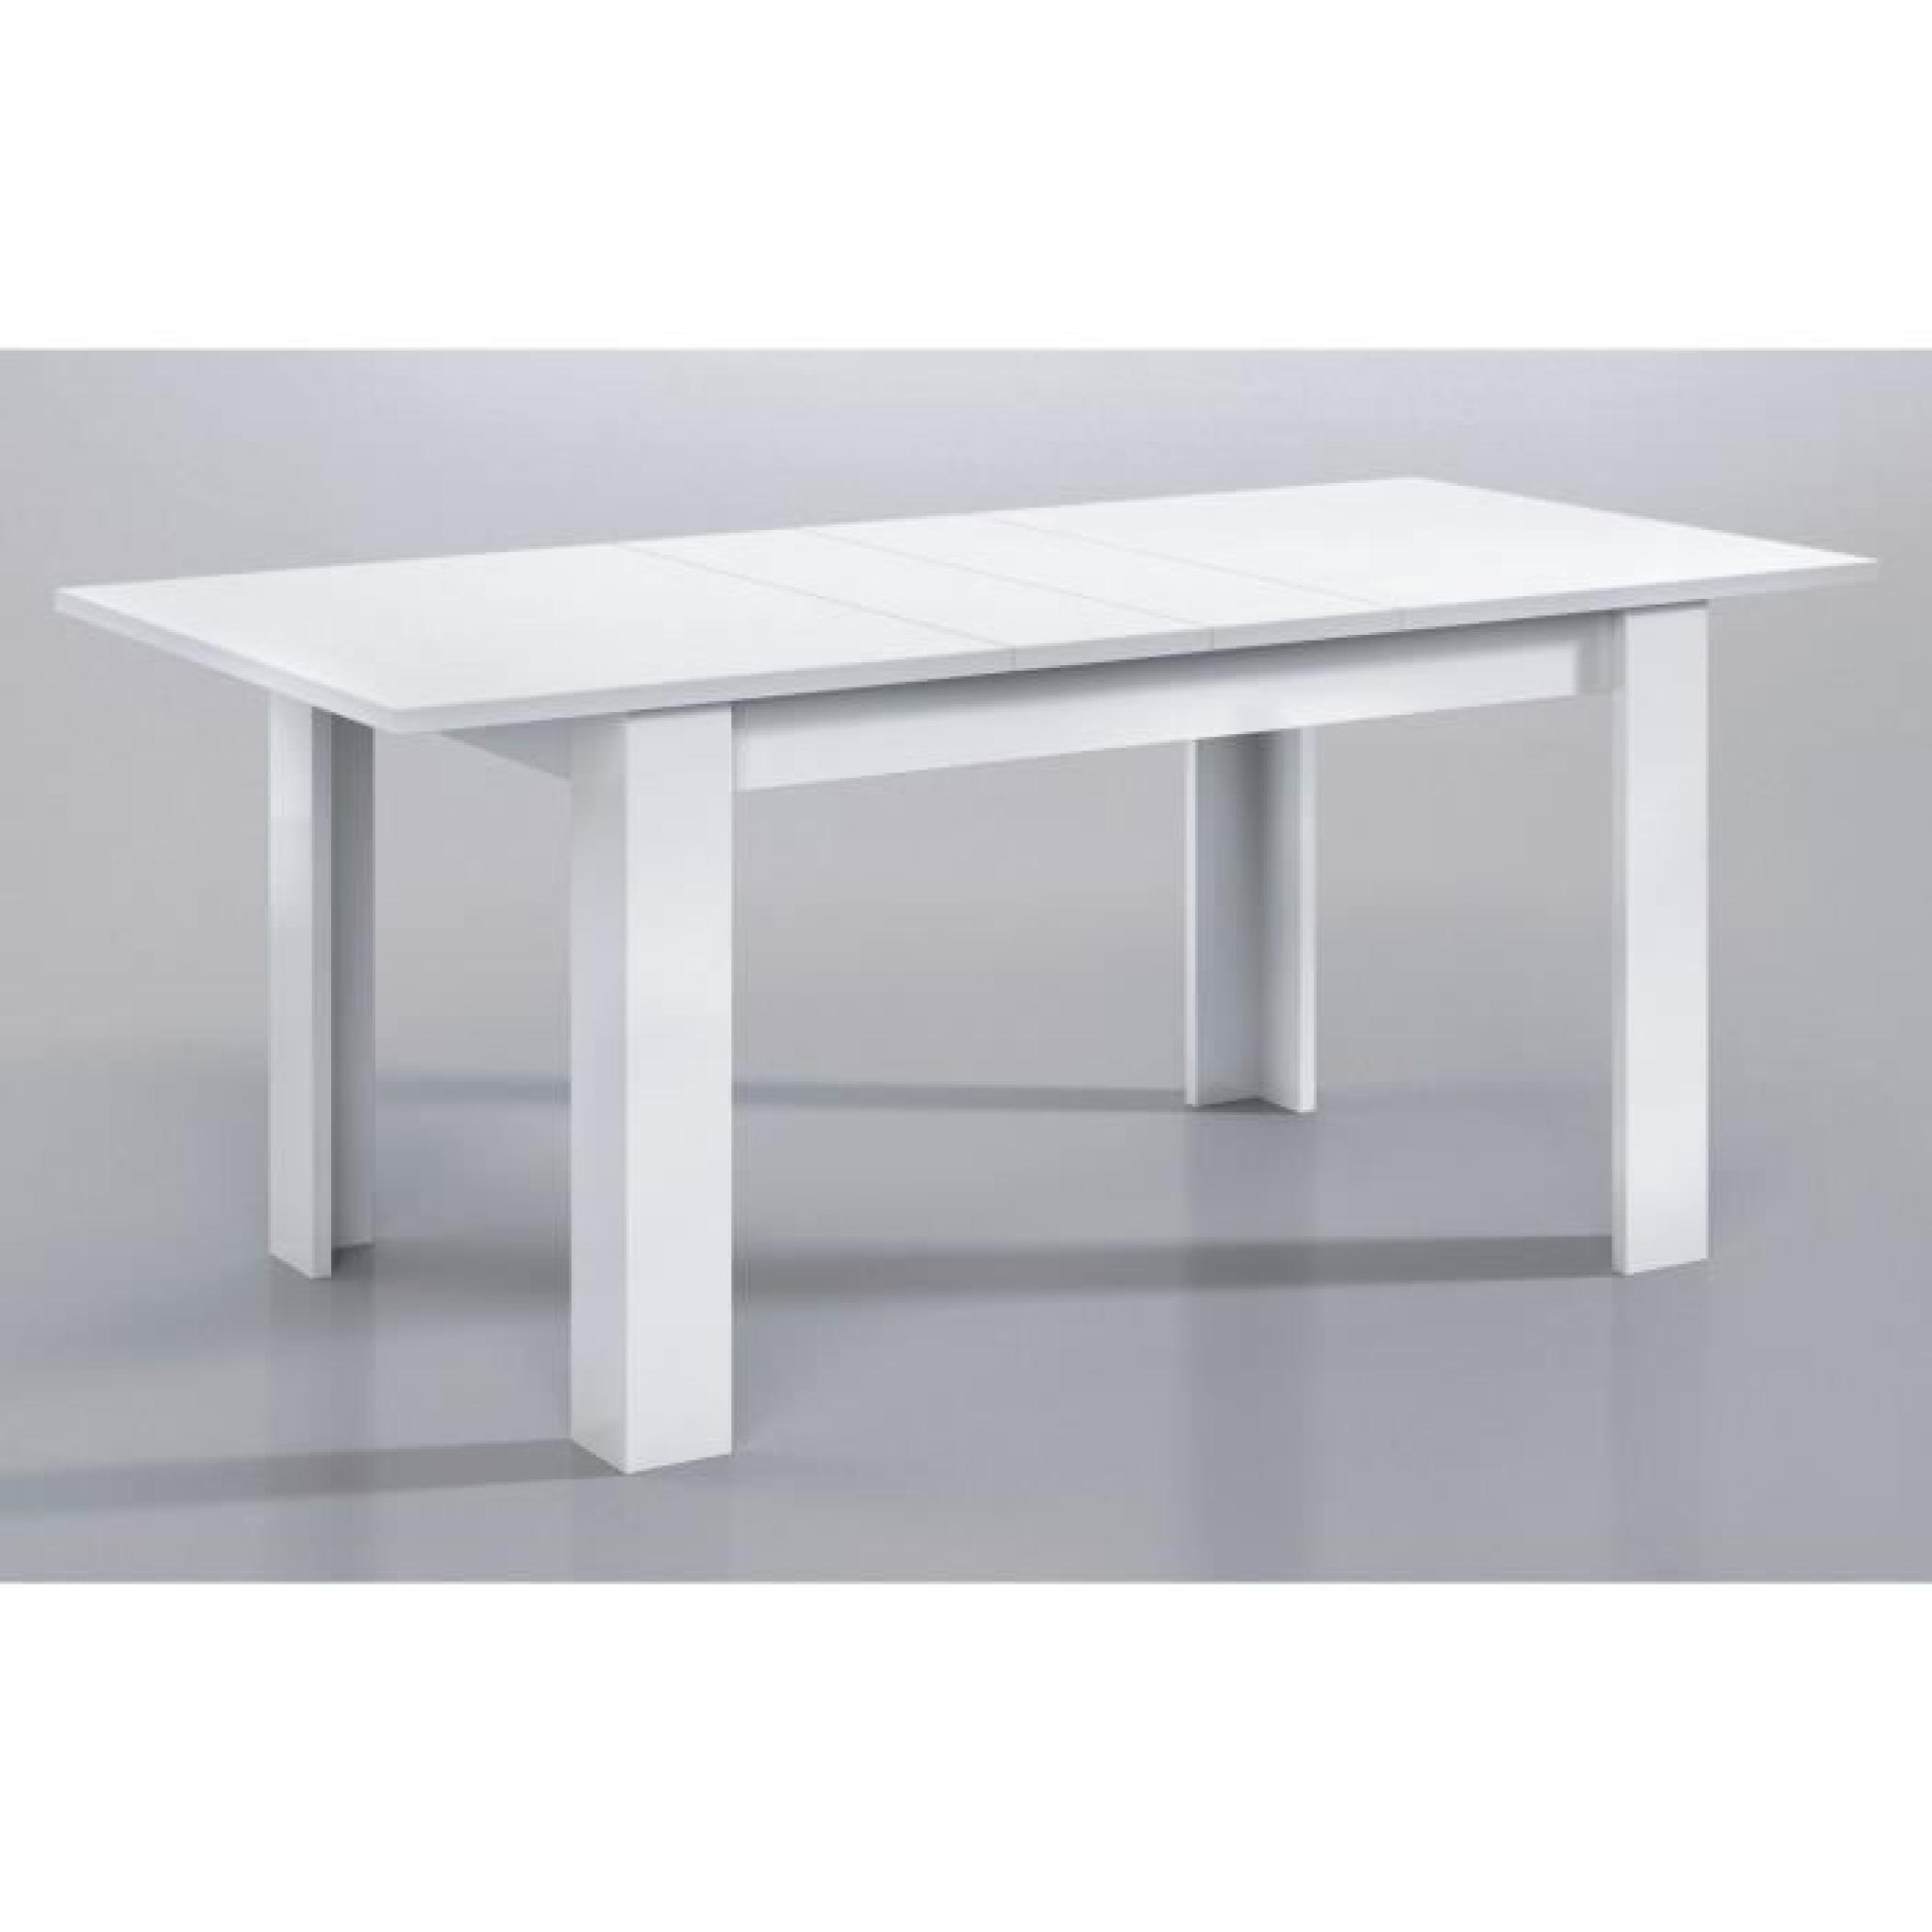 Kendra table extensible 140 190cm blanc brillant achat for Table salle manger pas cher